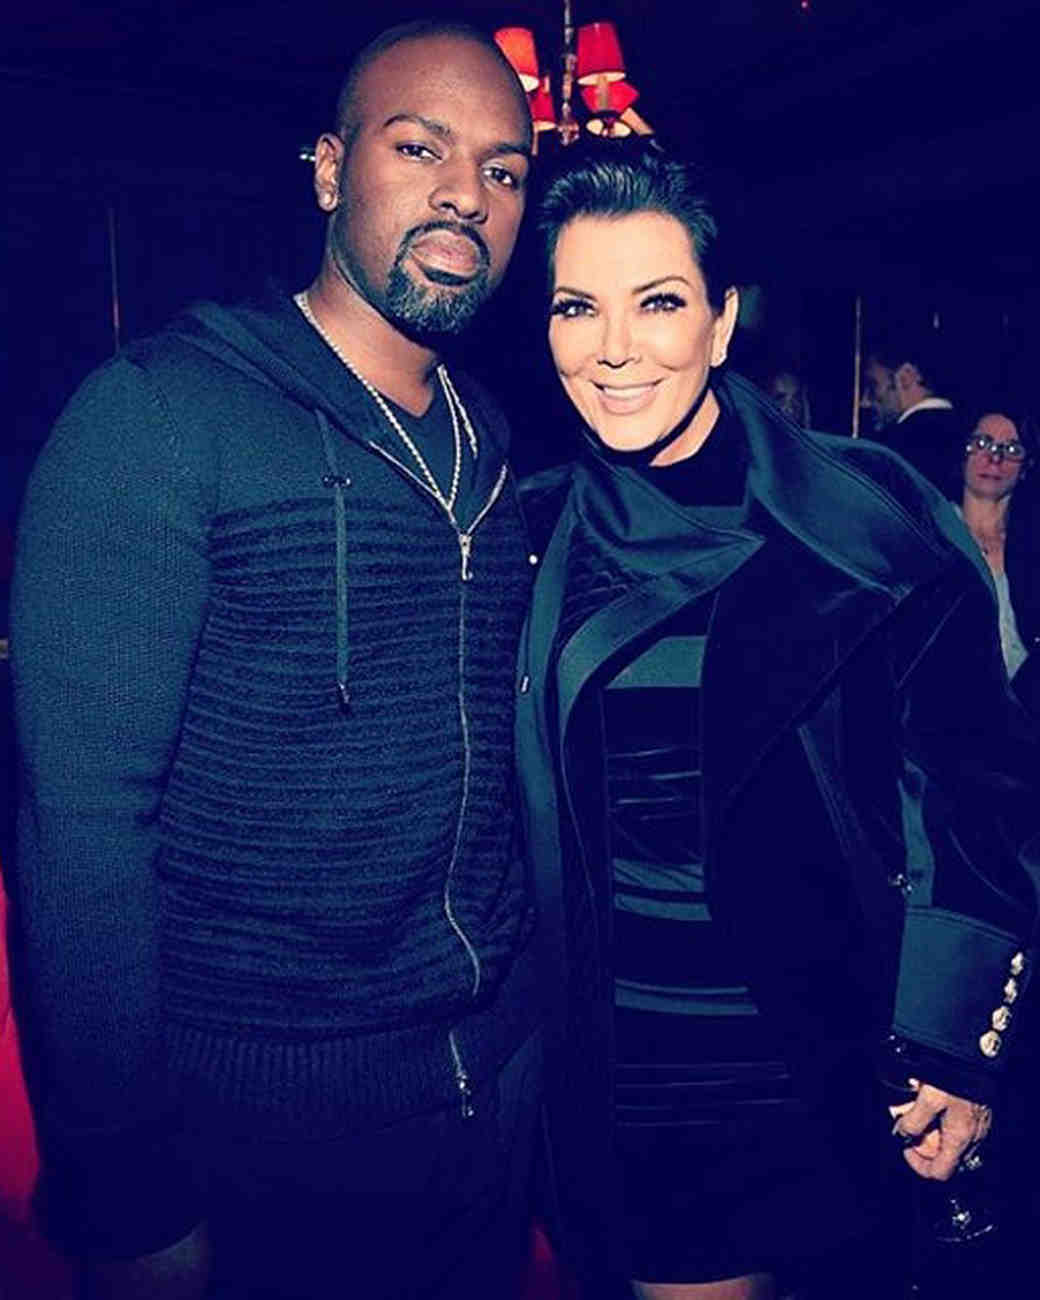 celebrity-couples-we-hope-get-engaged-kris-jenner-corey-gamble-1215.jpeg